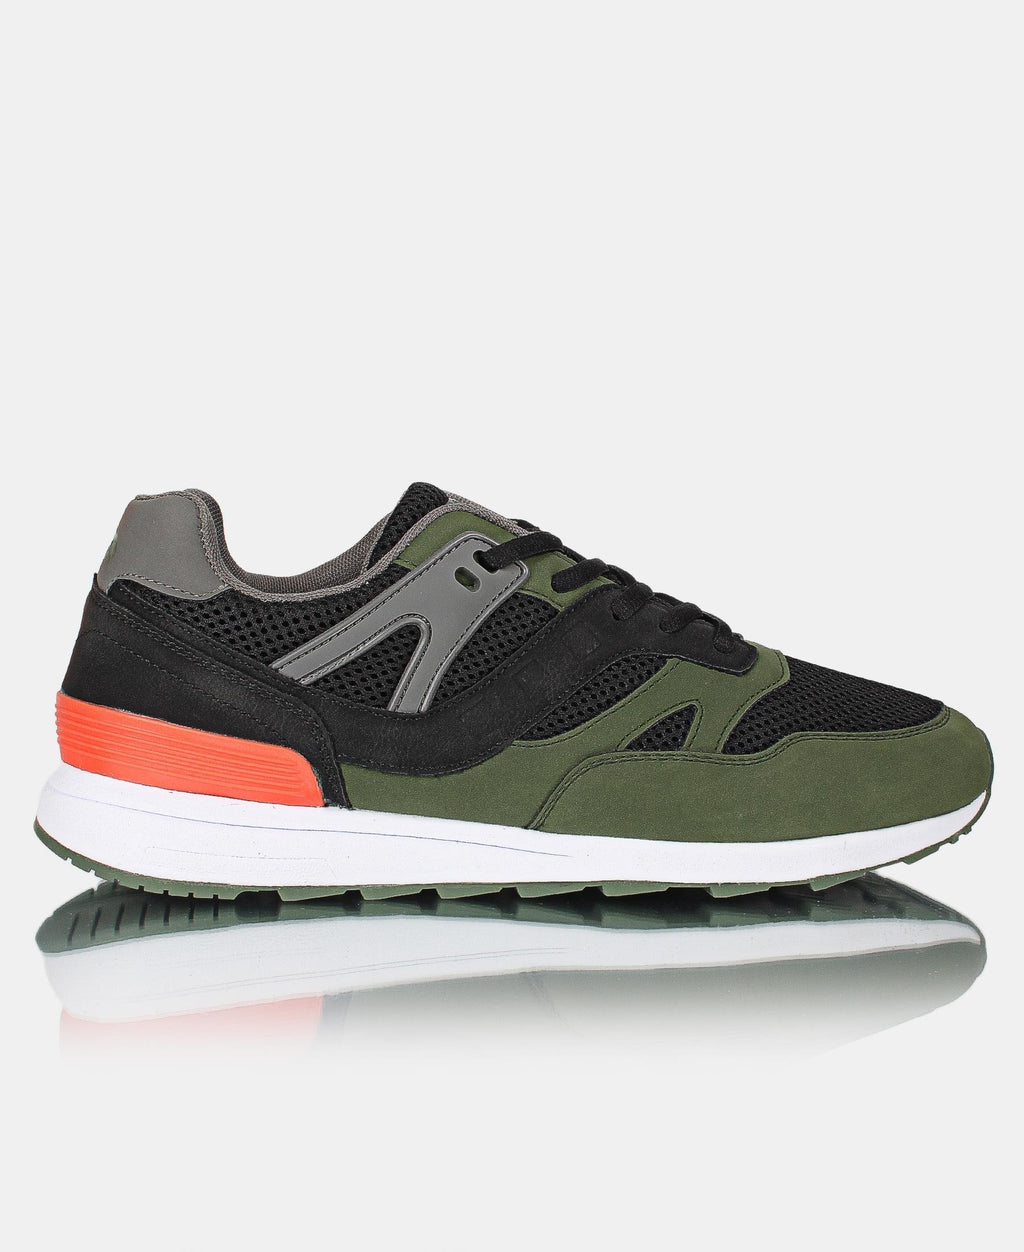 Men's Charged Sneakers - Olive